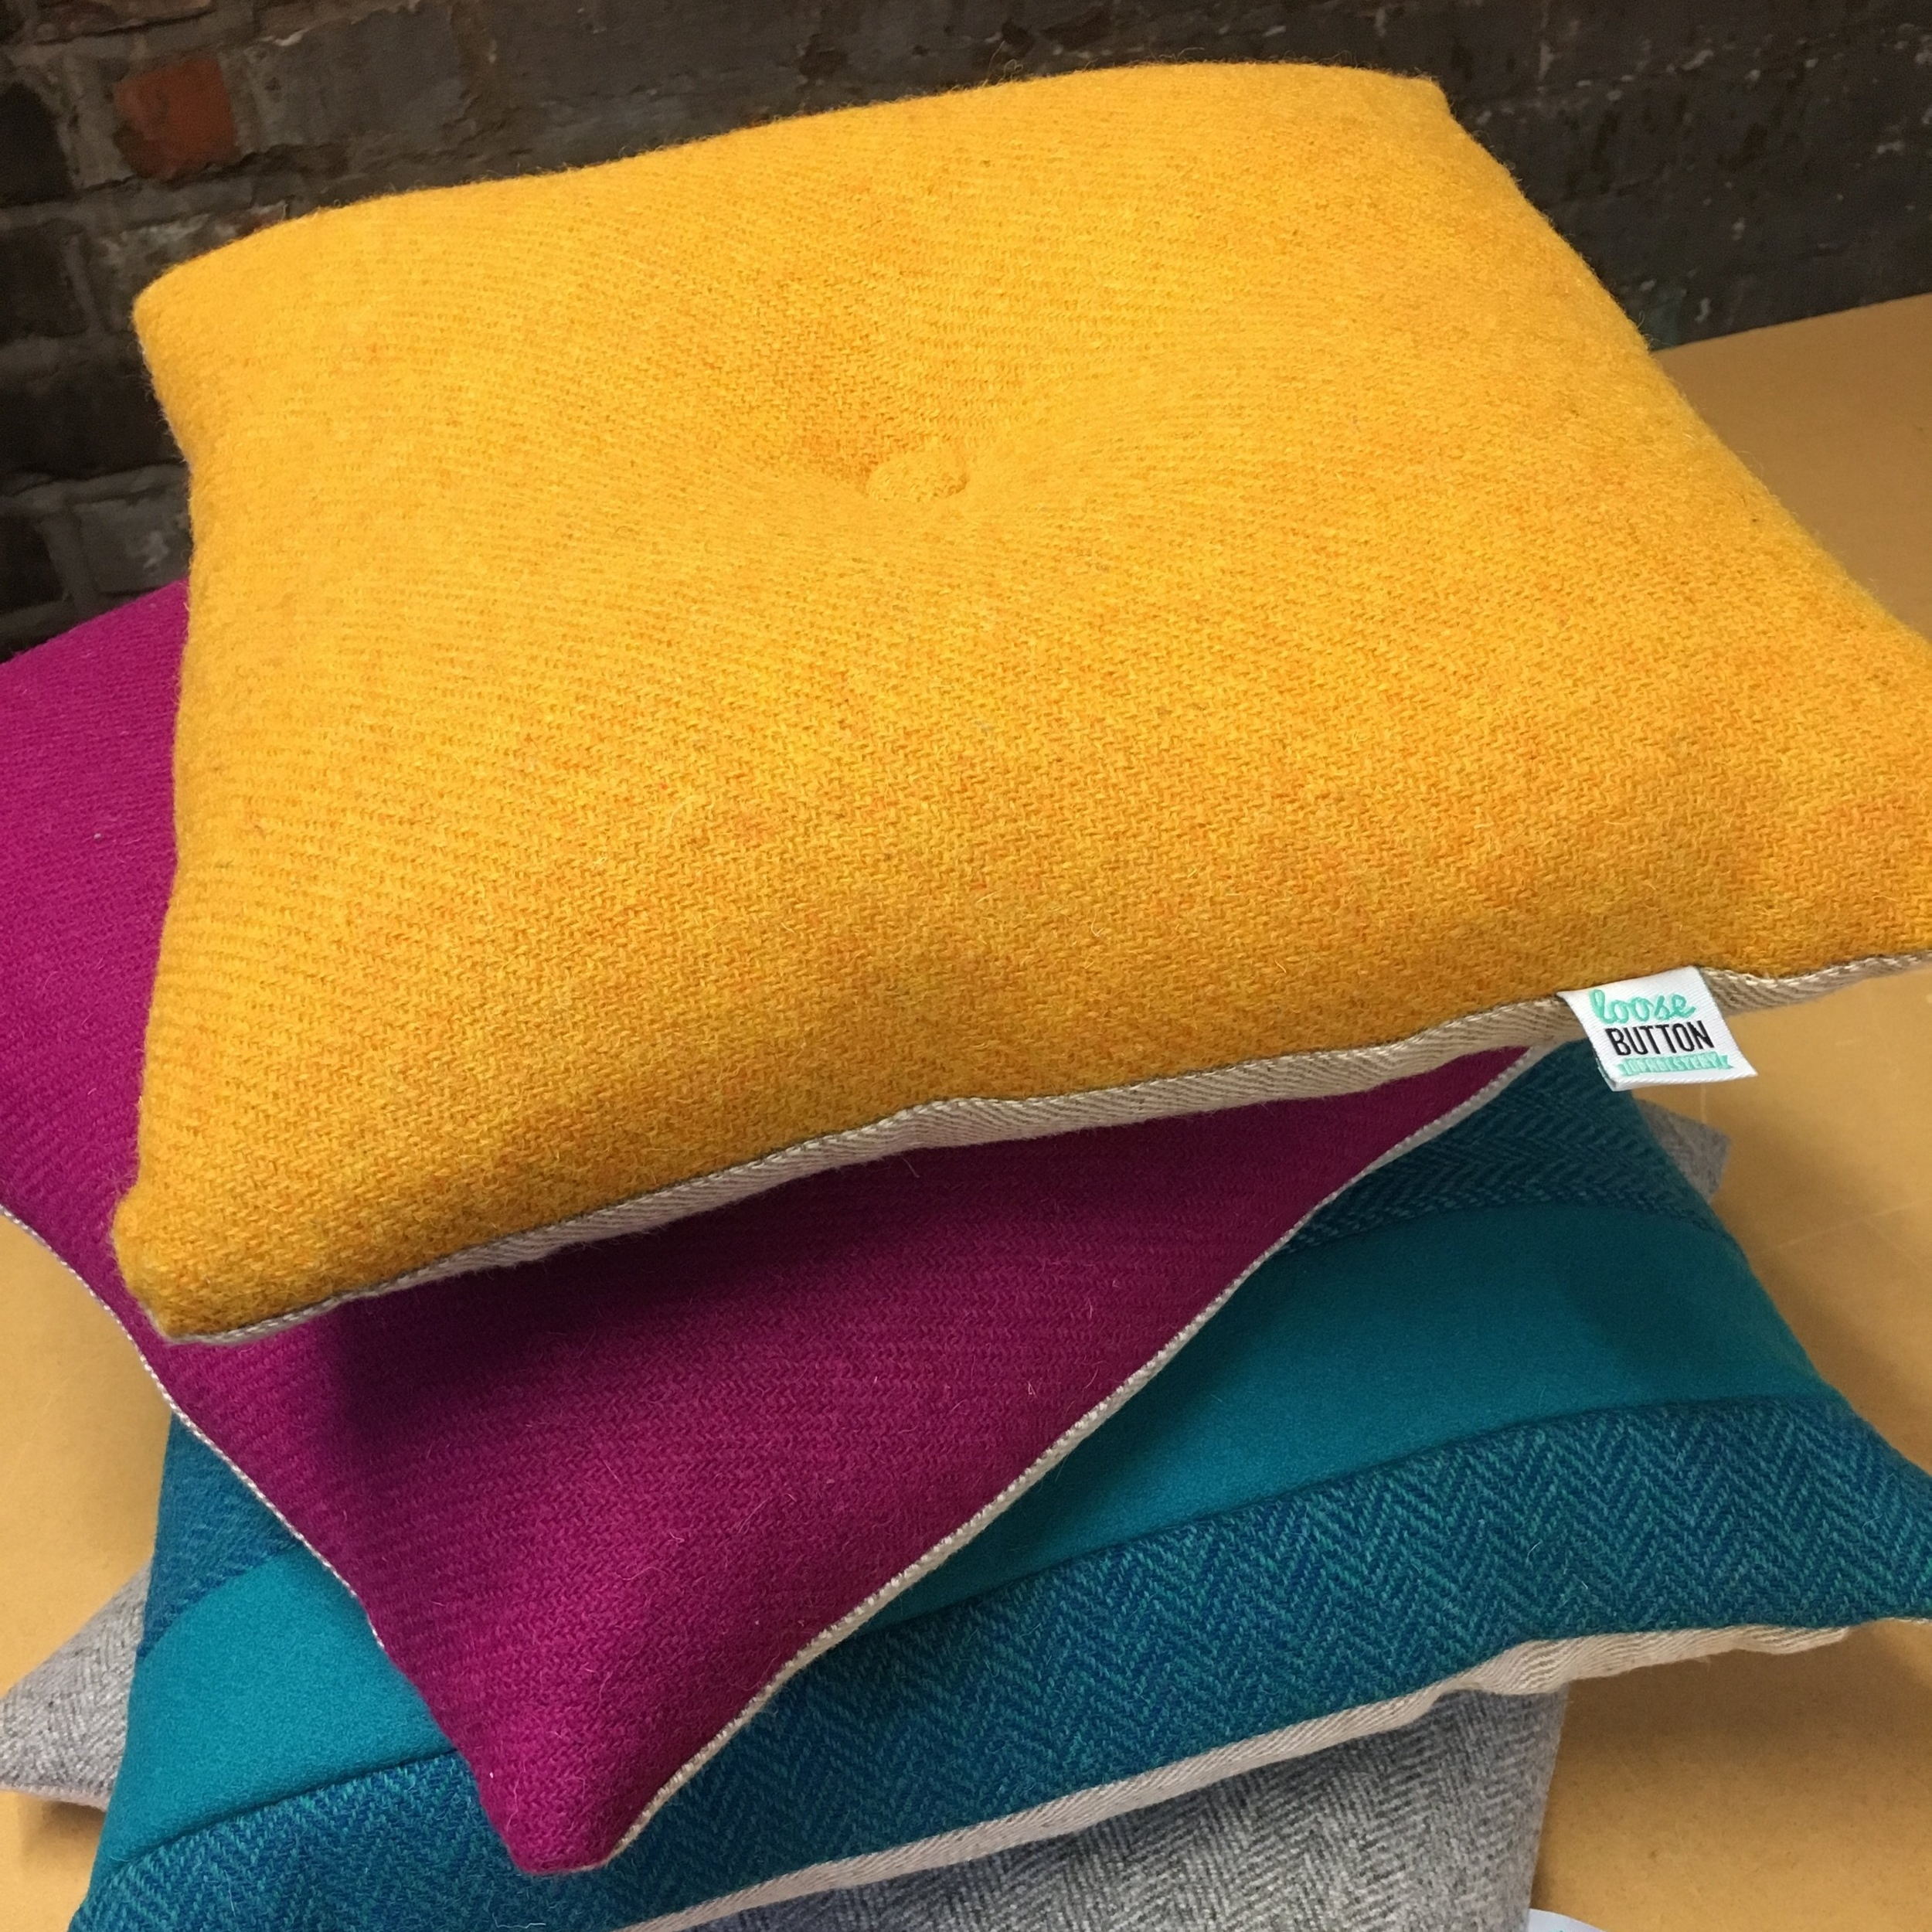 Harris Tweed & Wool Cushions - Classic Tweed & Wools